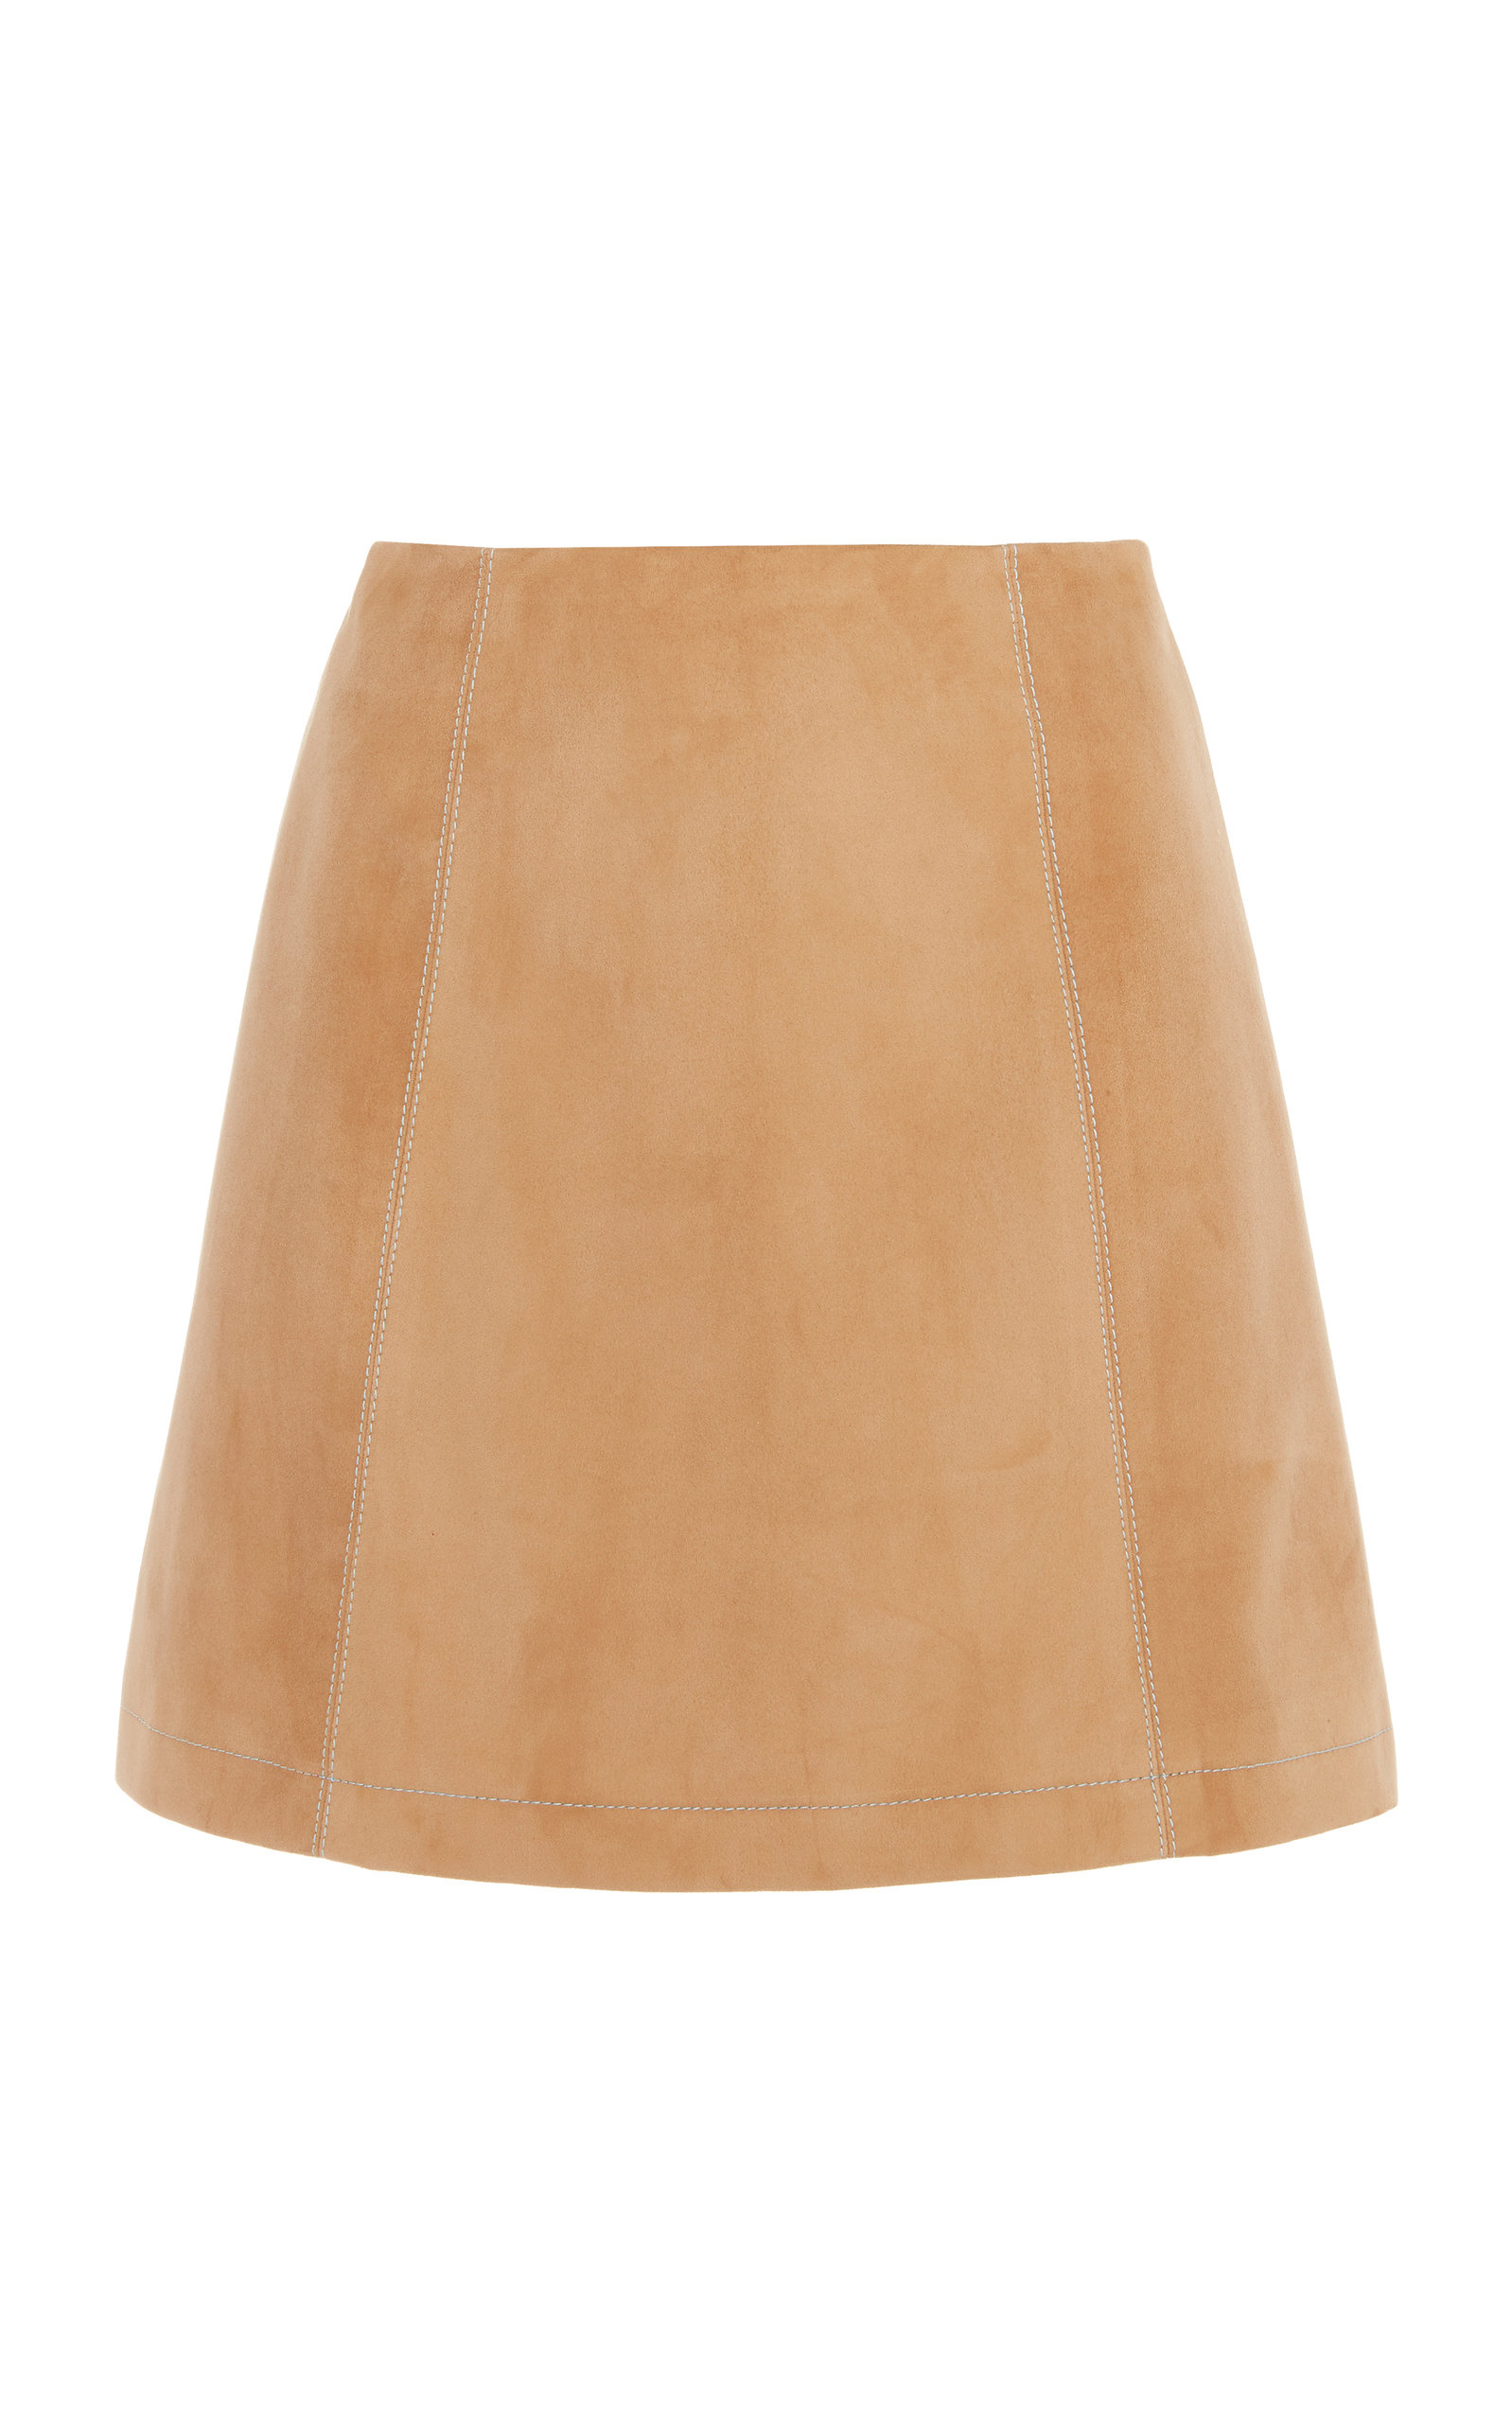 Carolina Herrera SUEDE MINI SKIRT